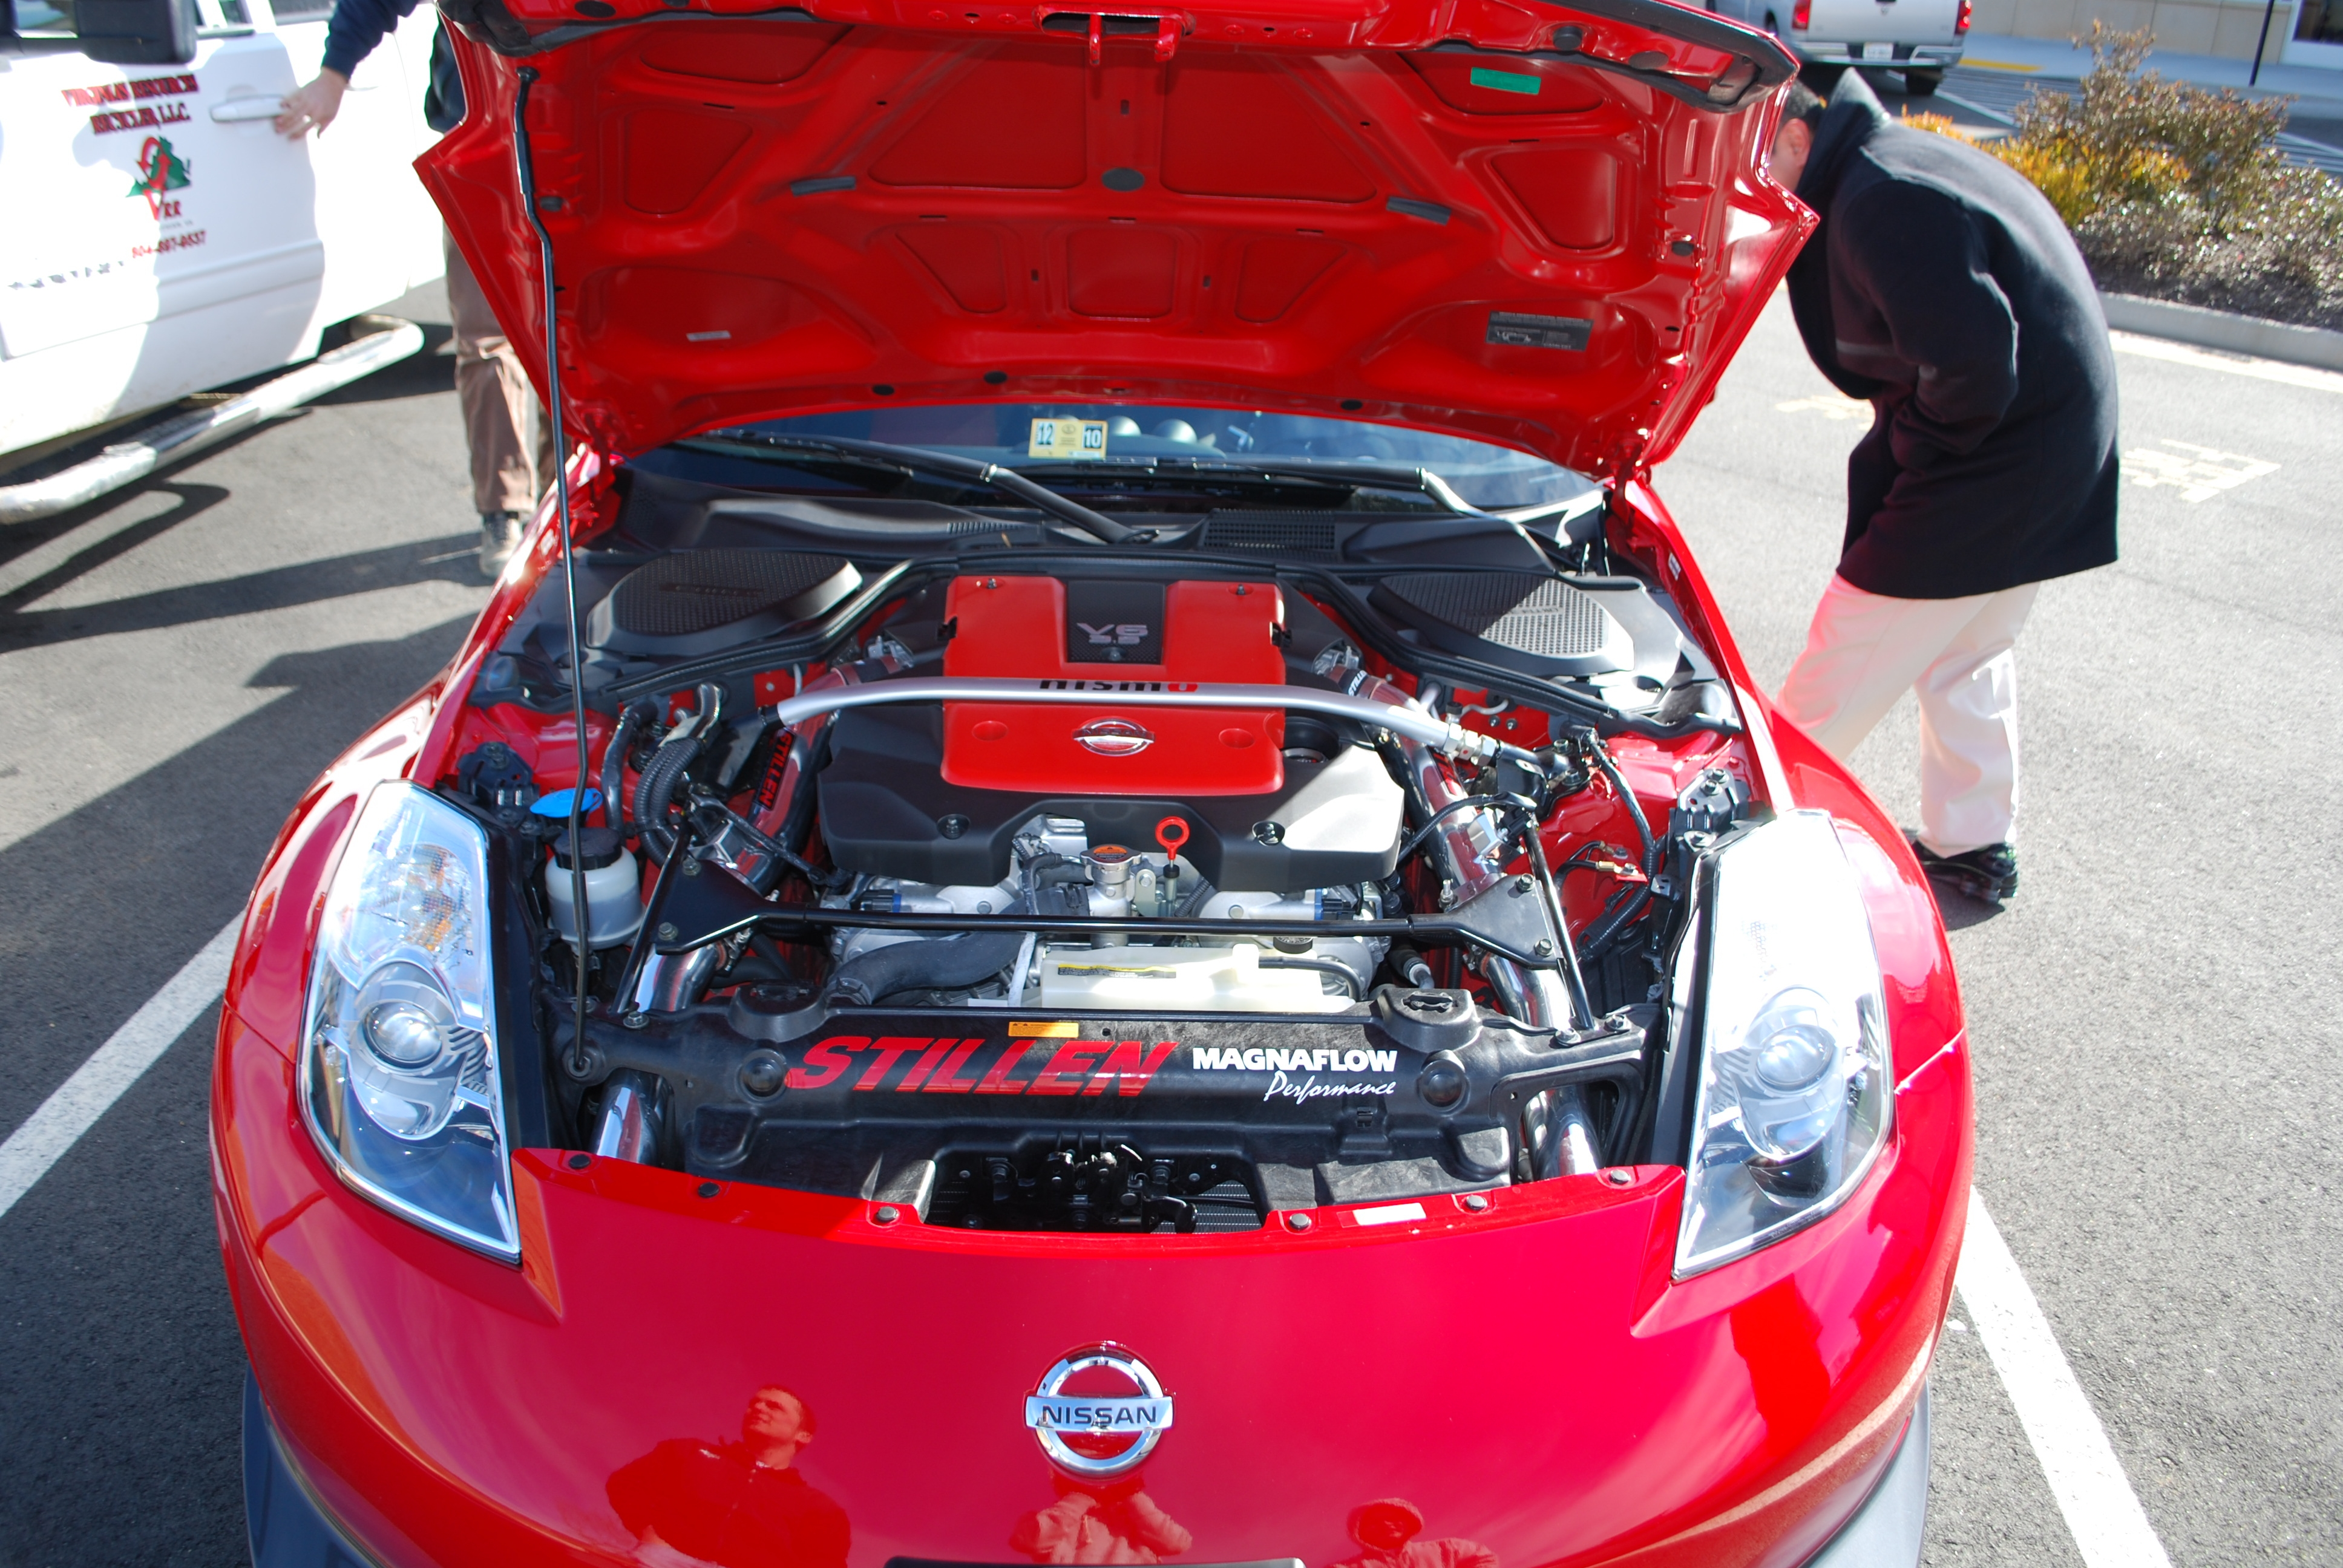 2008 Nissan 350z Touring Horsepower Image Gallery  HCPR